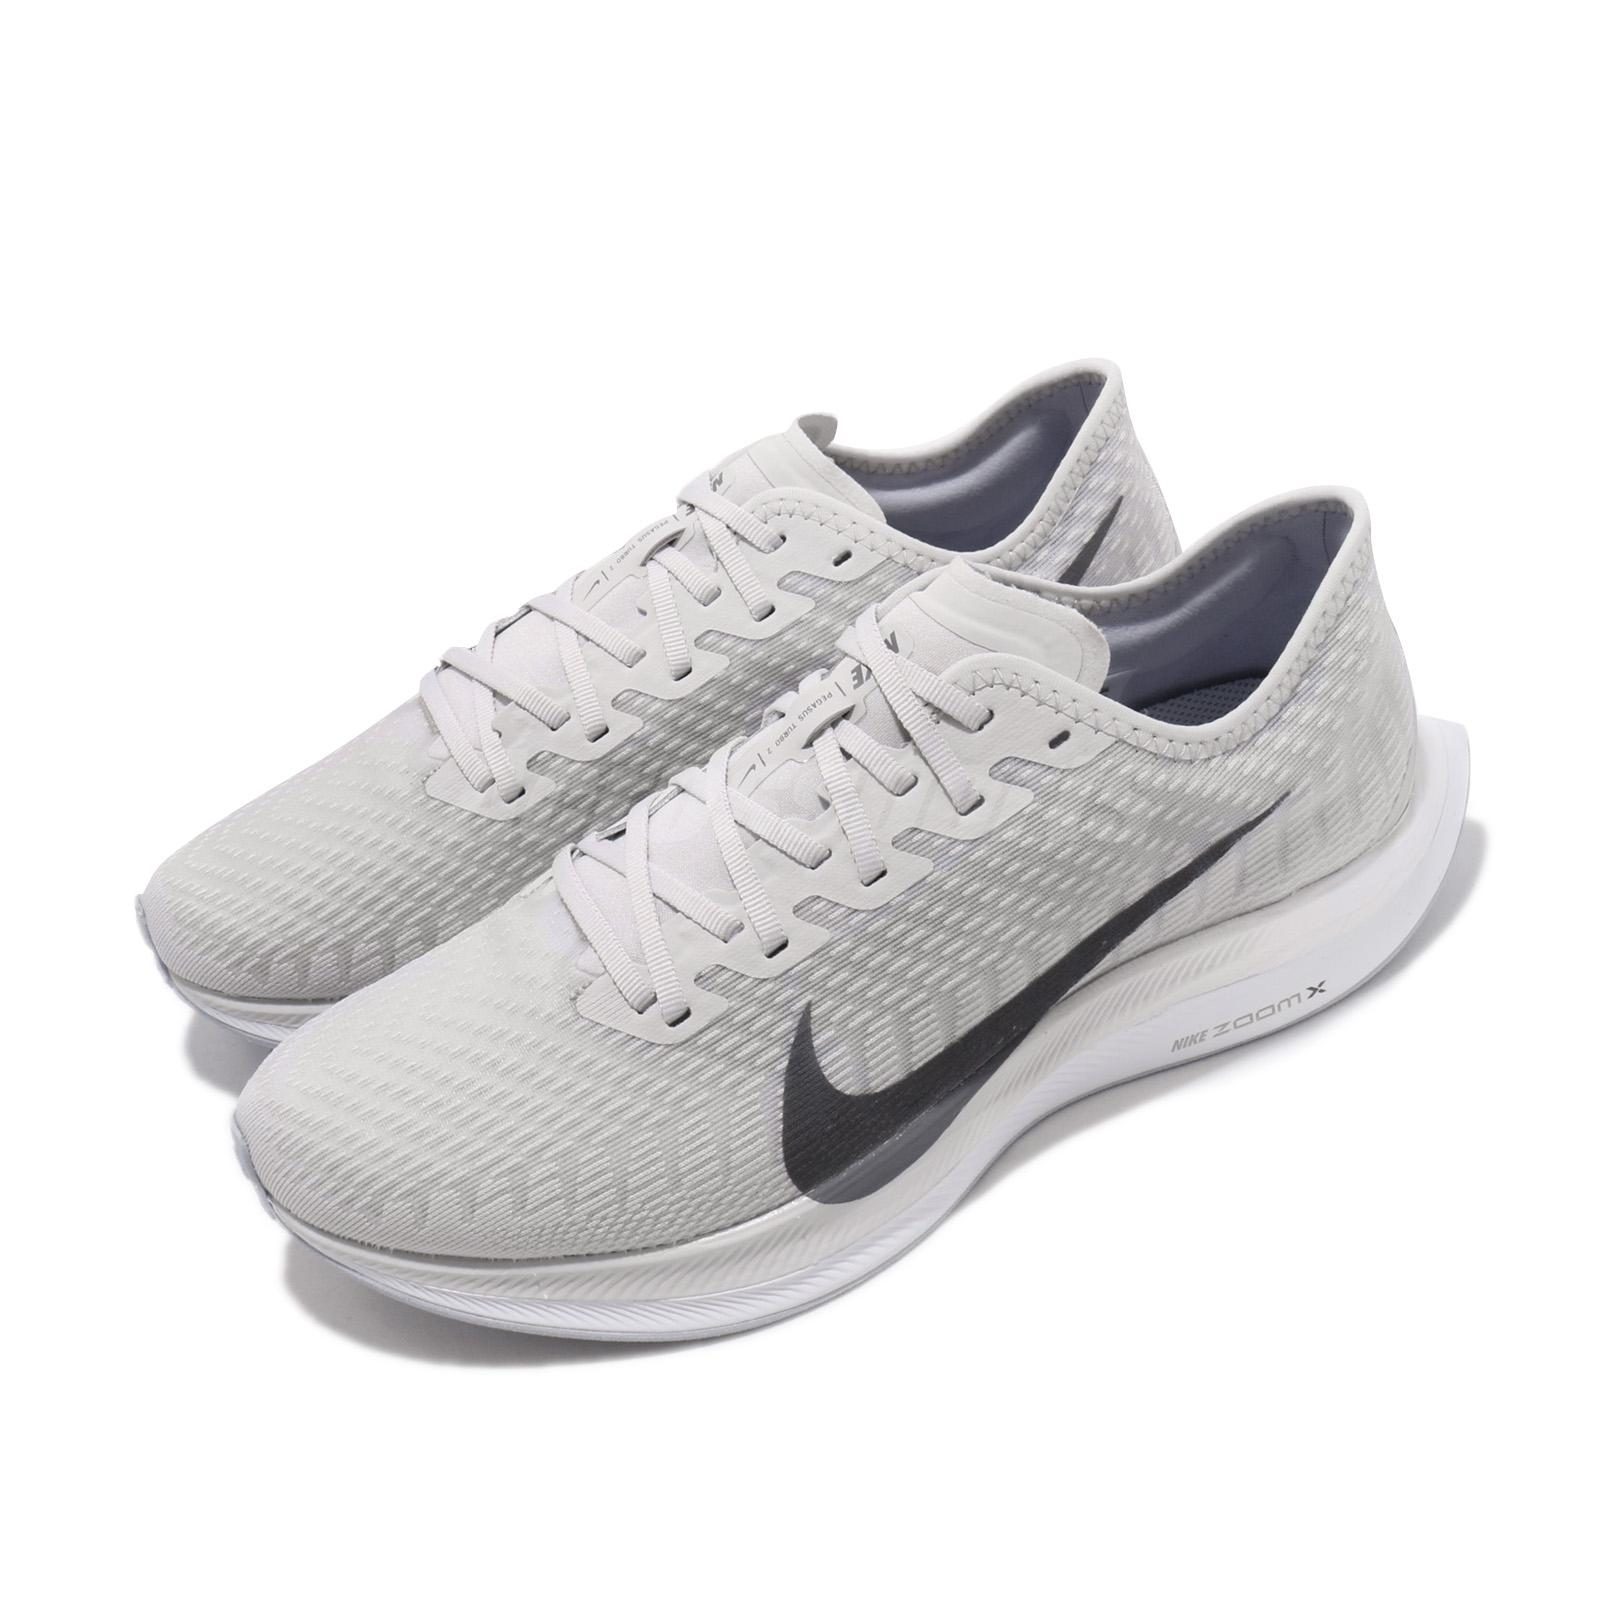 more photos 1c8f4 22a70 Details about Nike Zoom Pegasus Turbo 2 Vast Grey White Men Running Shoes  Sneakers AT2863-002